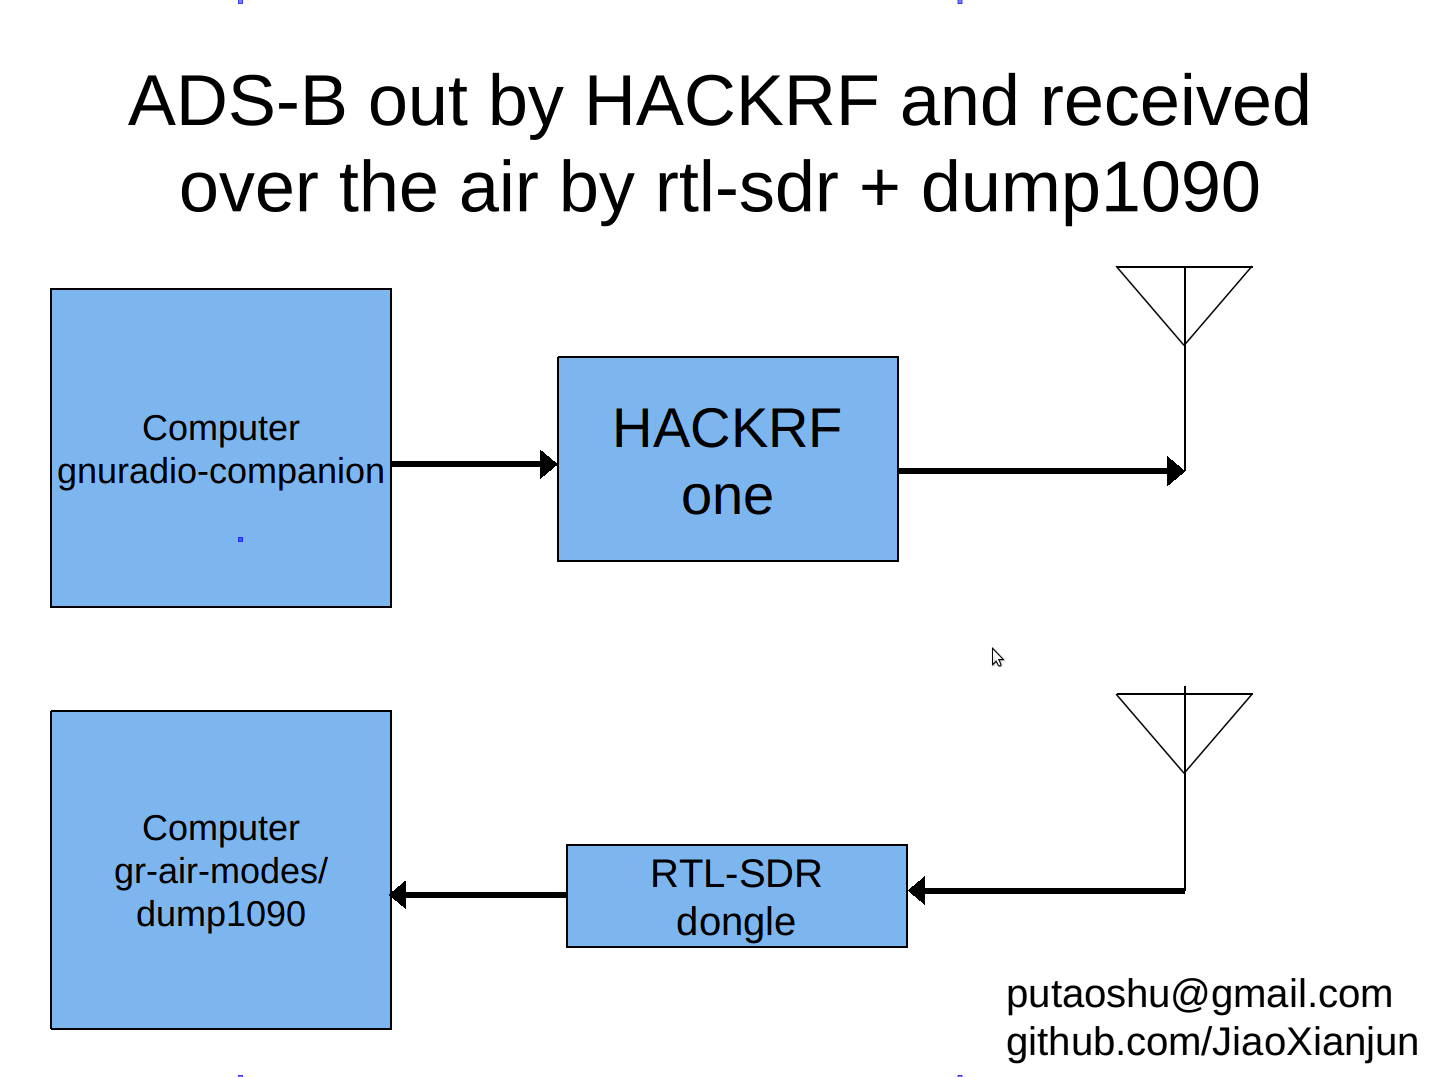 ADS-B out by HACKRF and received over the air by rtl-sdr